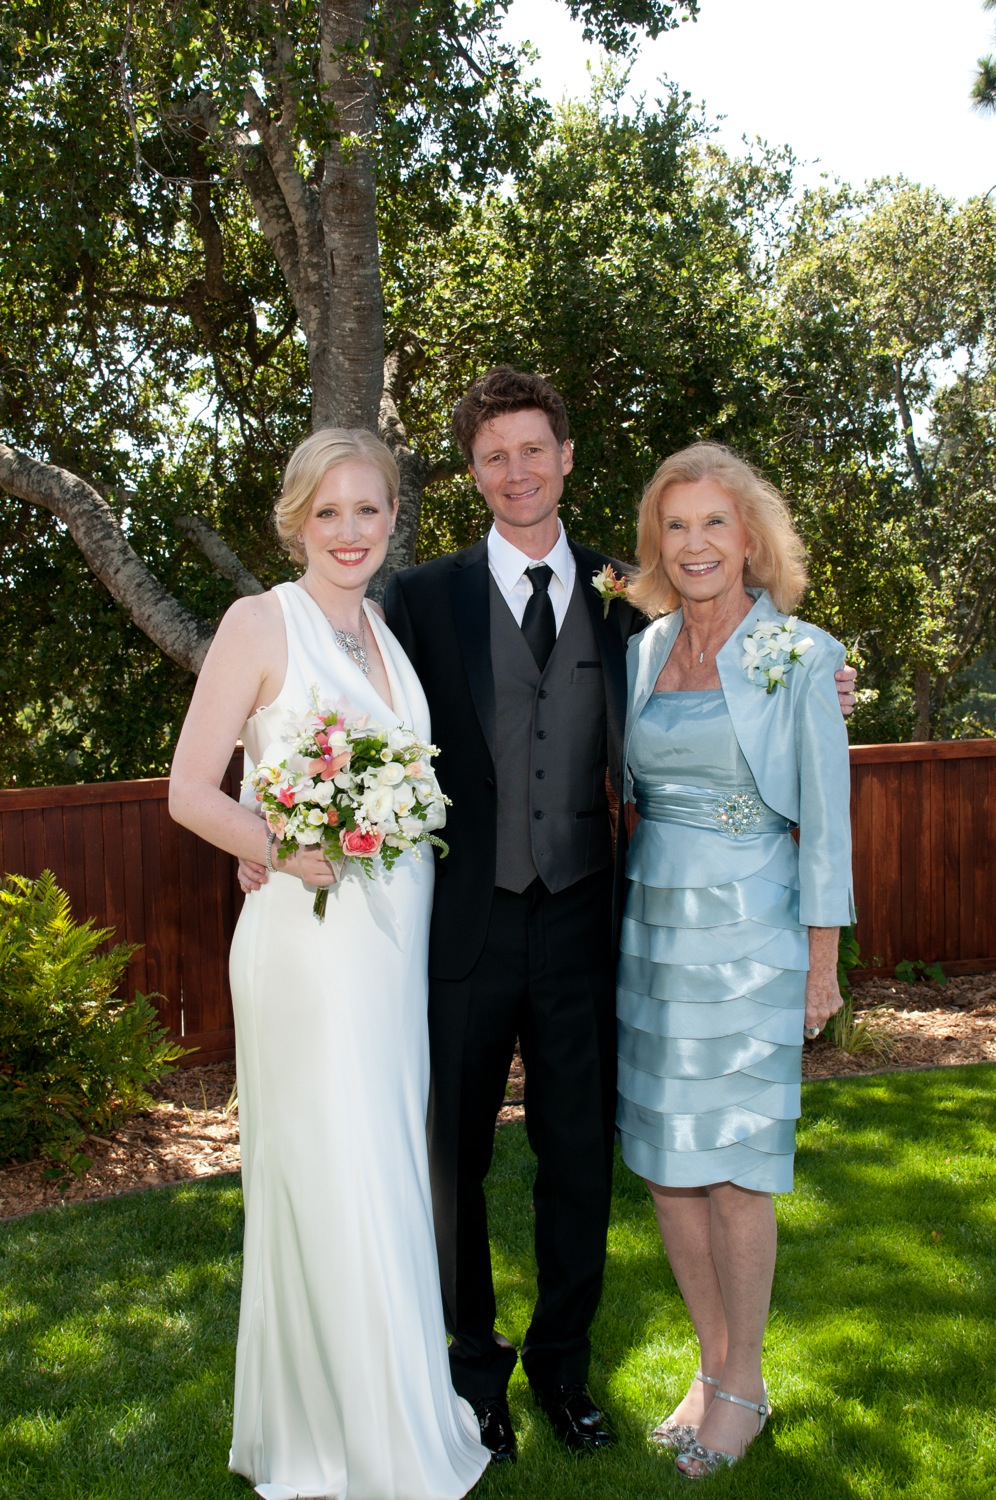 Jerram, Elizabeth, and the mother of the groom, Barbara.